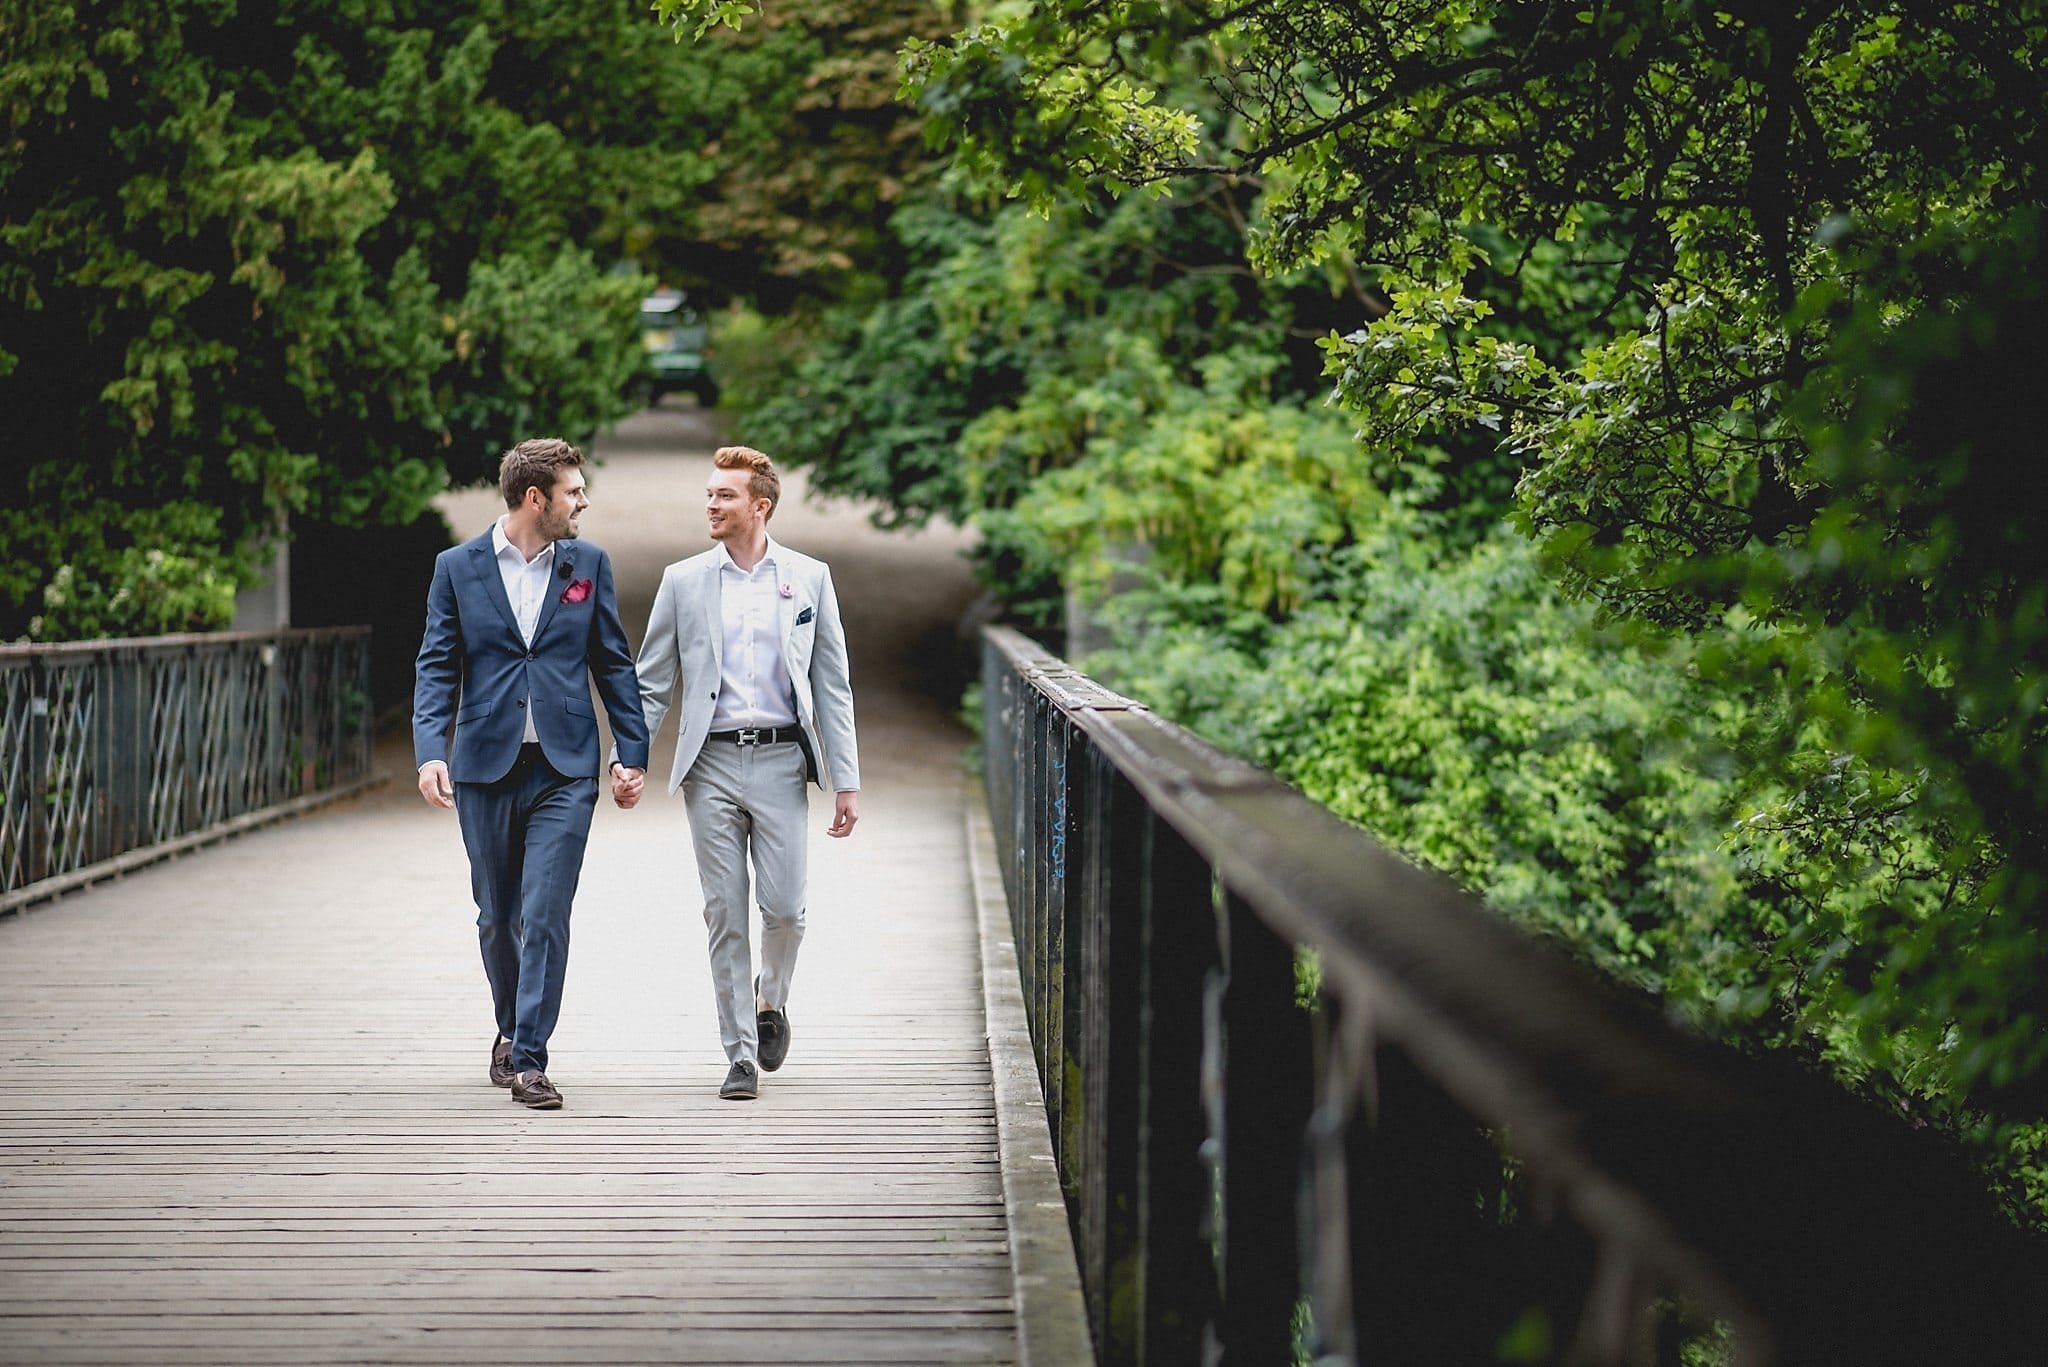 Drew and Tom walk hand in hand across the bridge in Ørstedsparken, Copenhagen